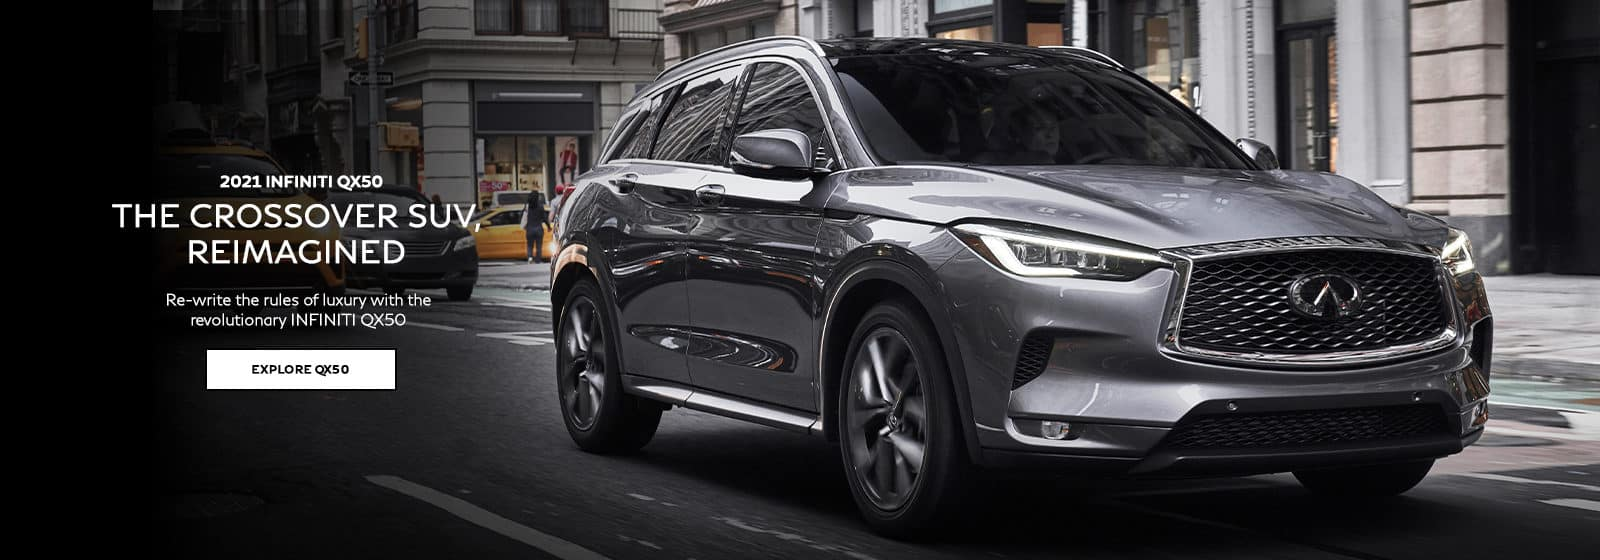 2021 INFINITI QX50 The Crossover SUV, Reimagined. Re-write the rules of luxury with the revolutionary INFINITI QX50. Click to explore QX50.